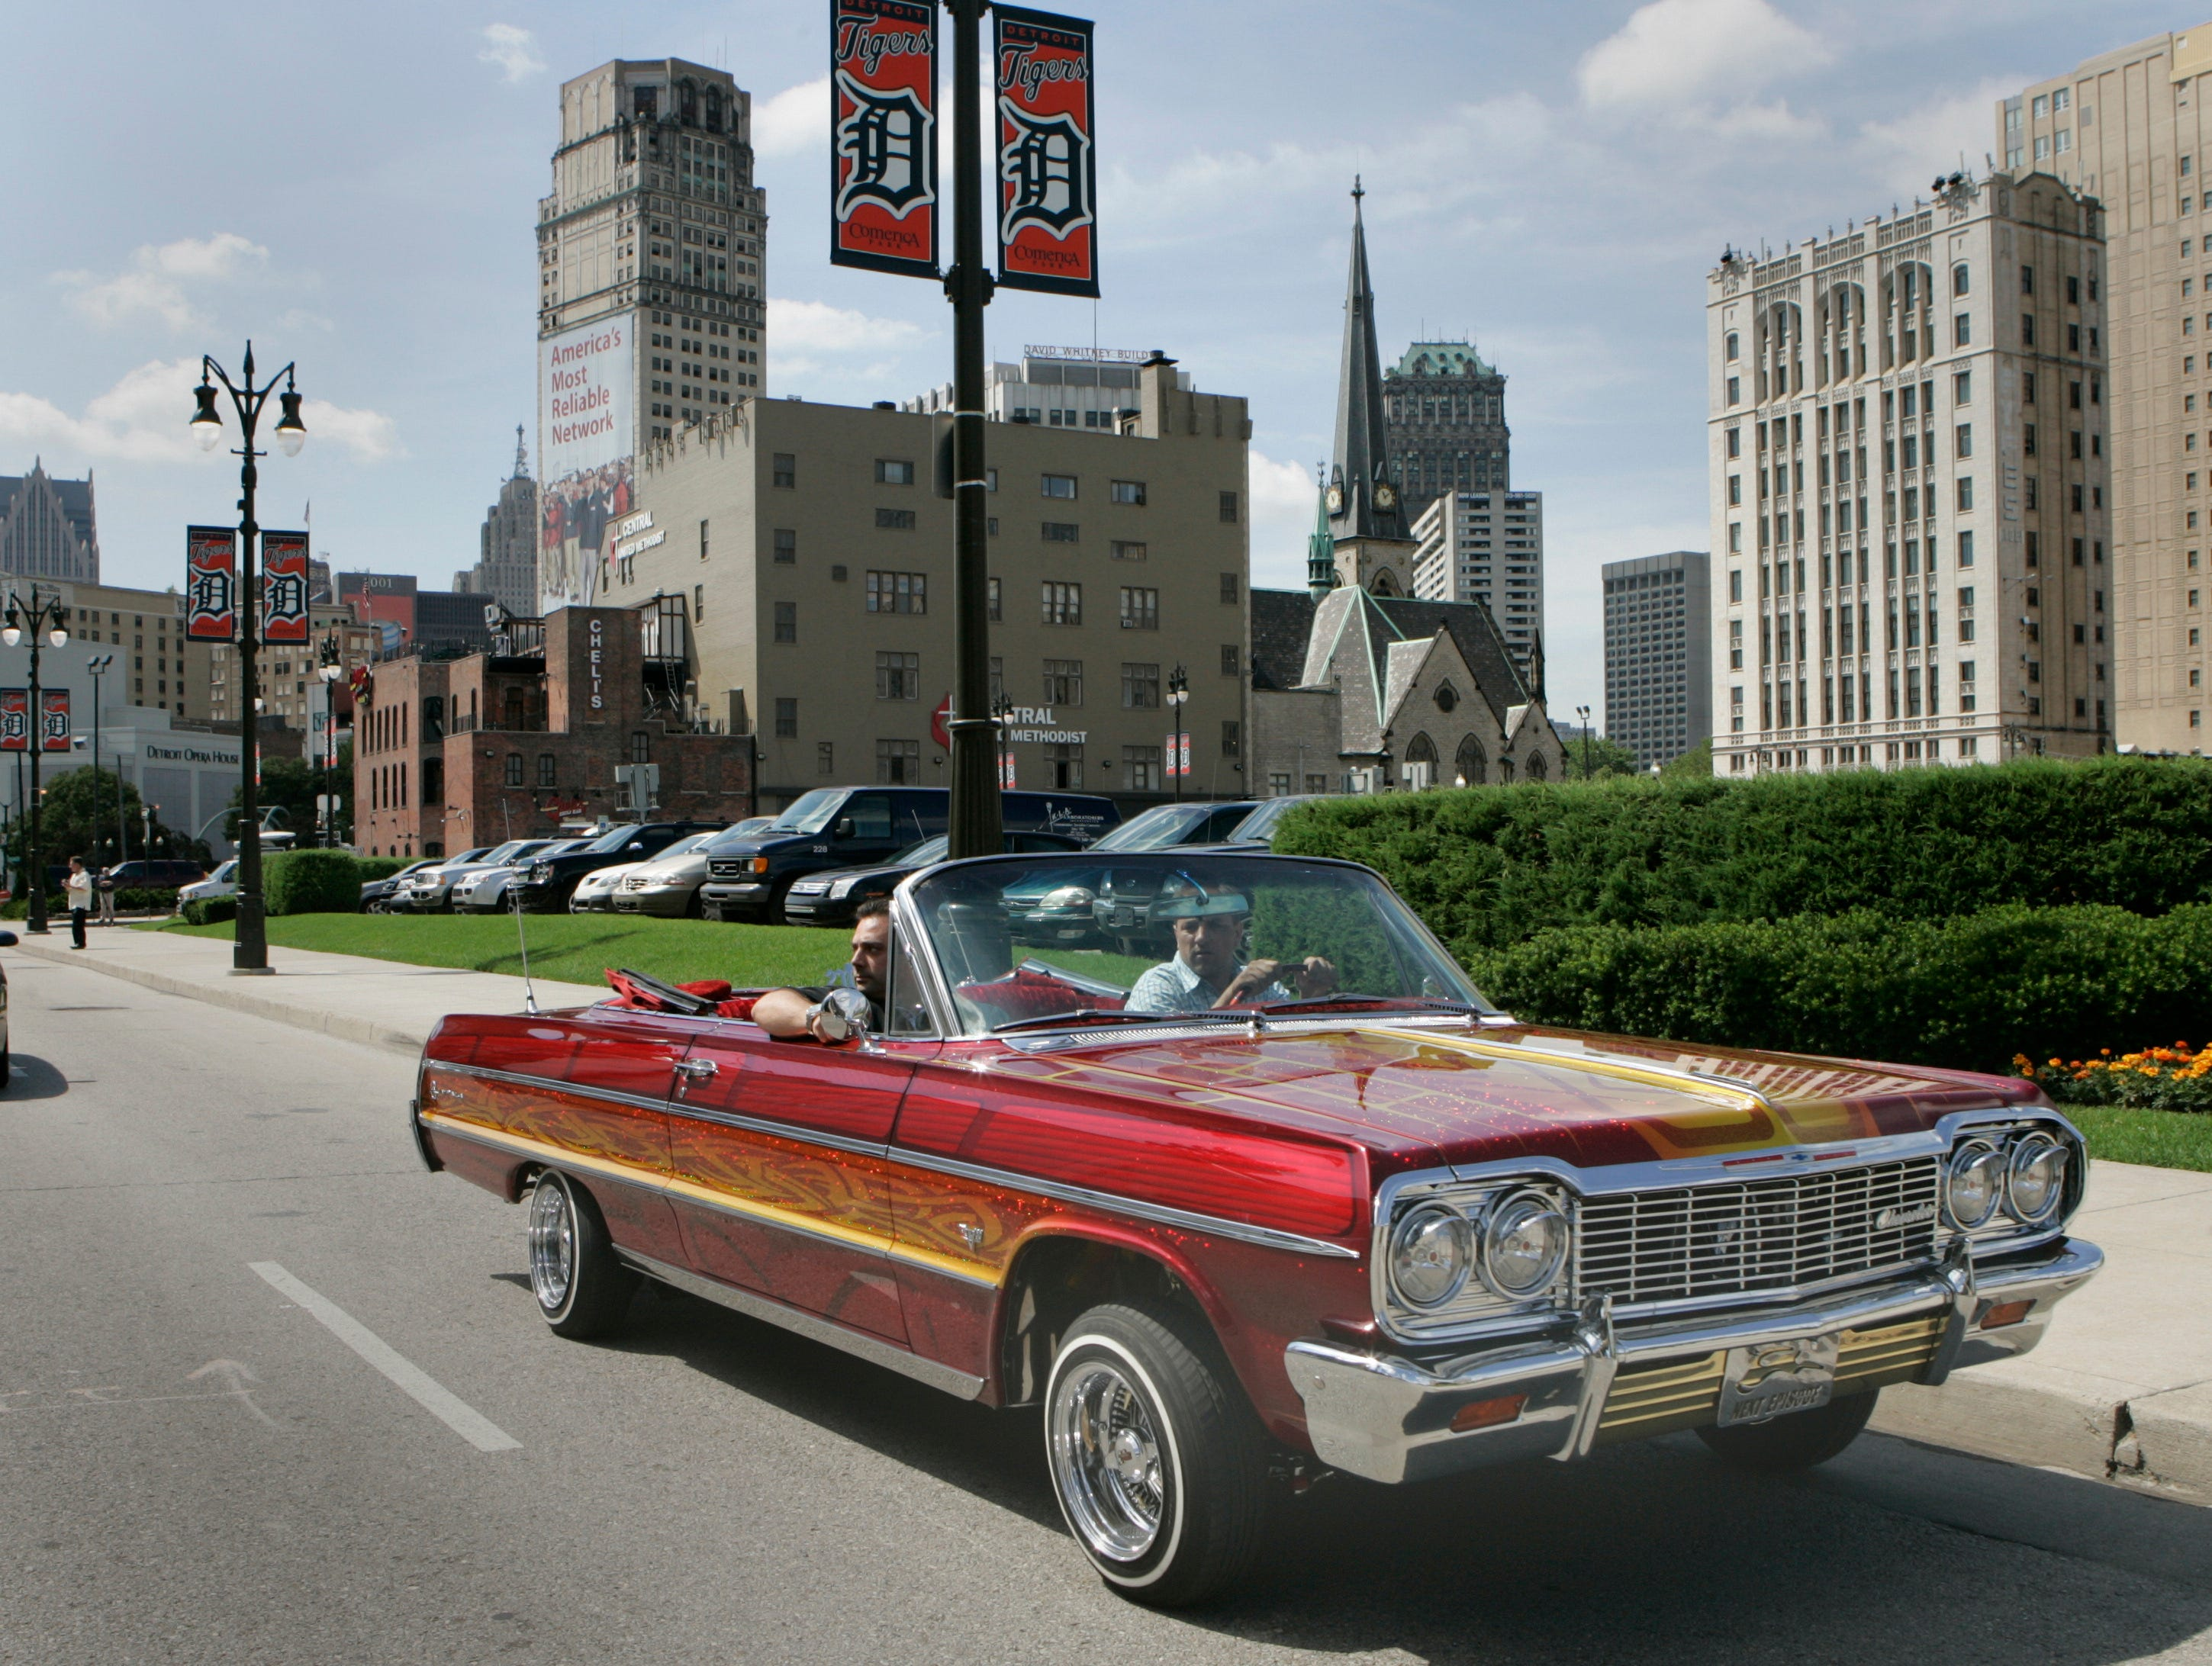 A 1964 Chevy Impala owned by Thomas Cavataio drives down Woodward in Detroit, June 24, 2008.